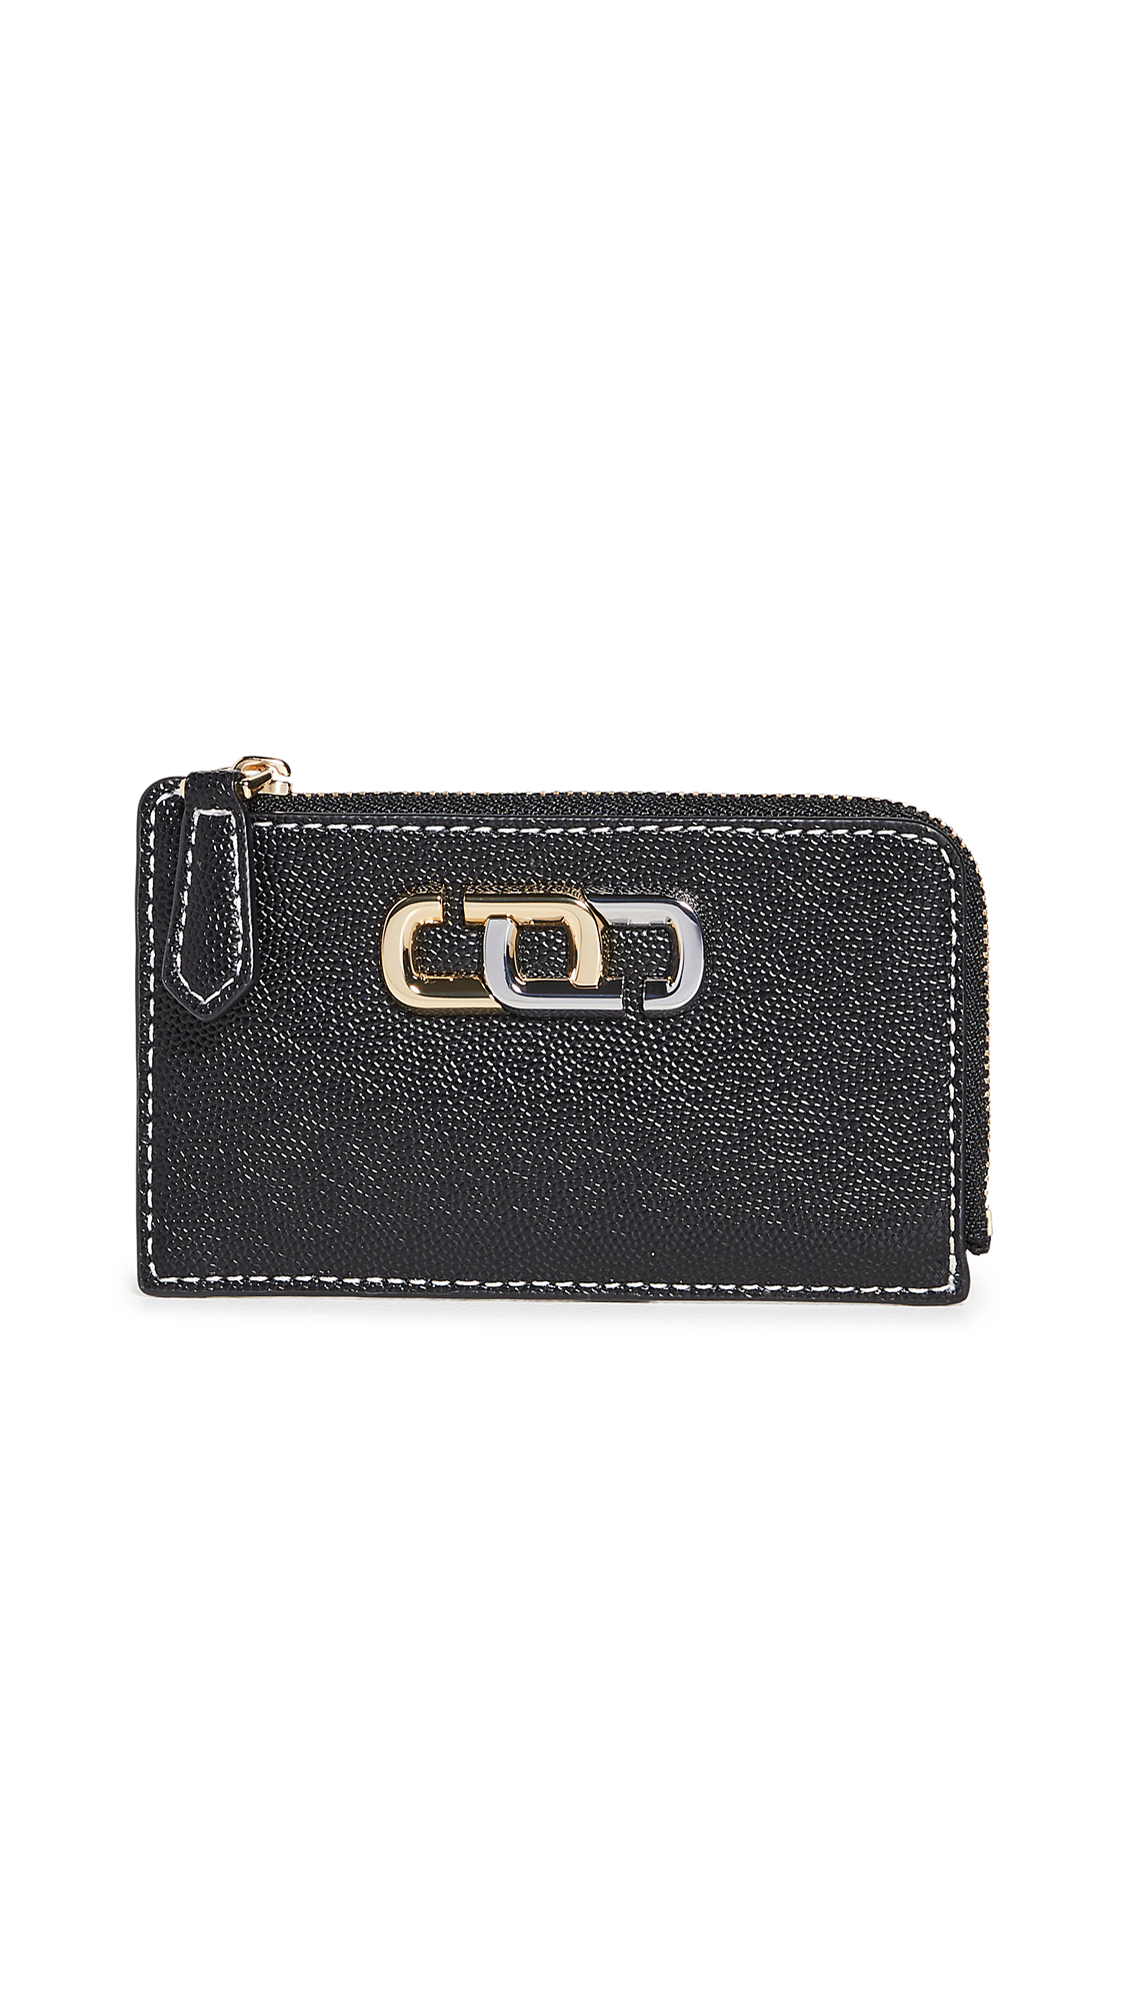 The Marc Jacobs Small Top Zip Wallet